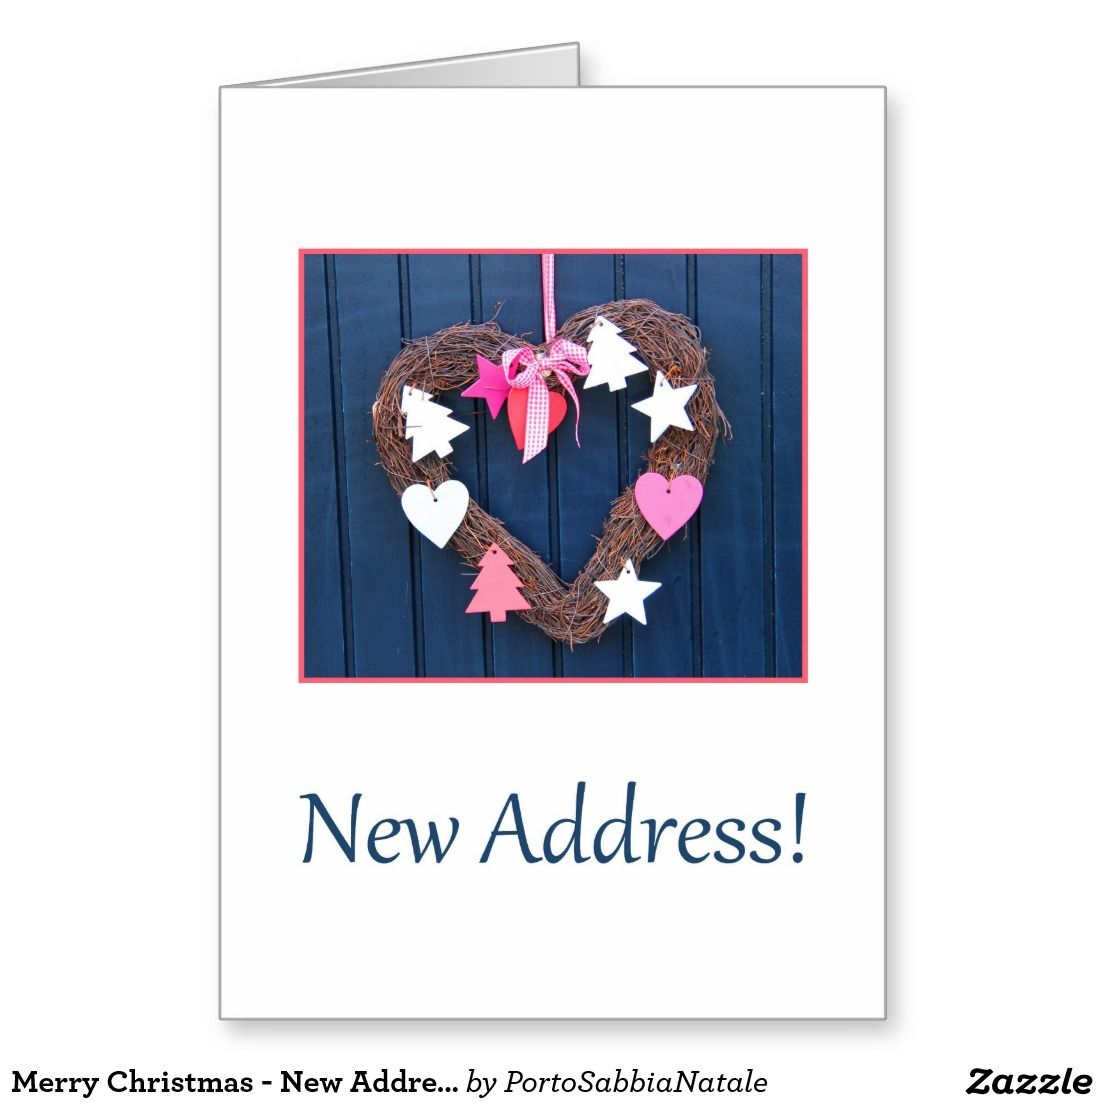 Merry Christmas - New Address Christmas Card | Merry